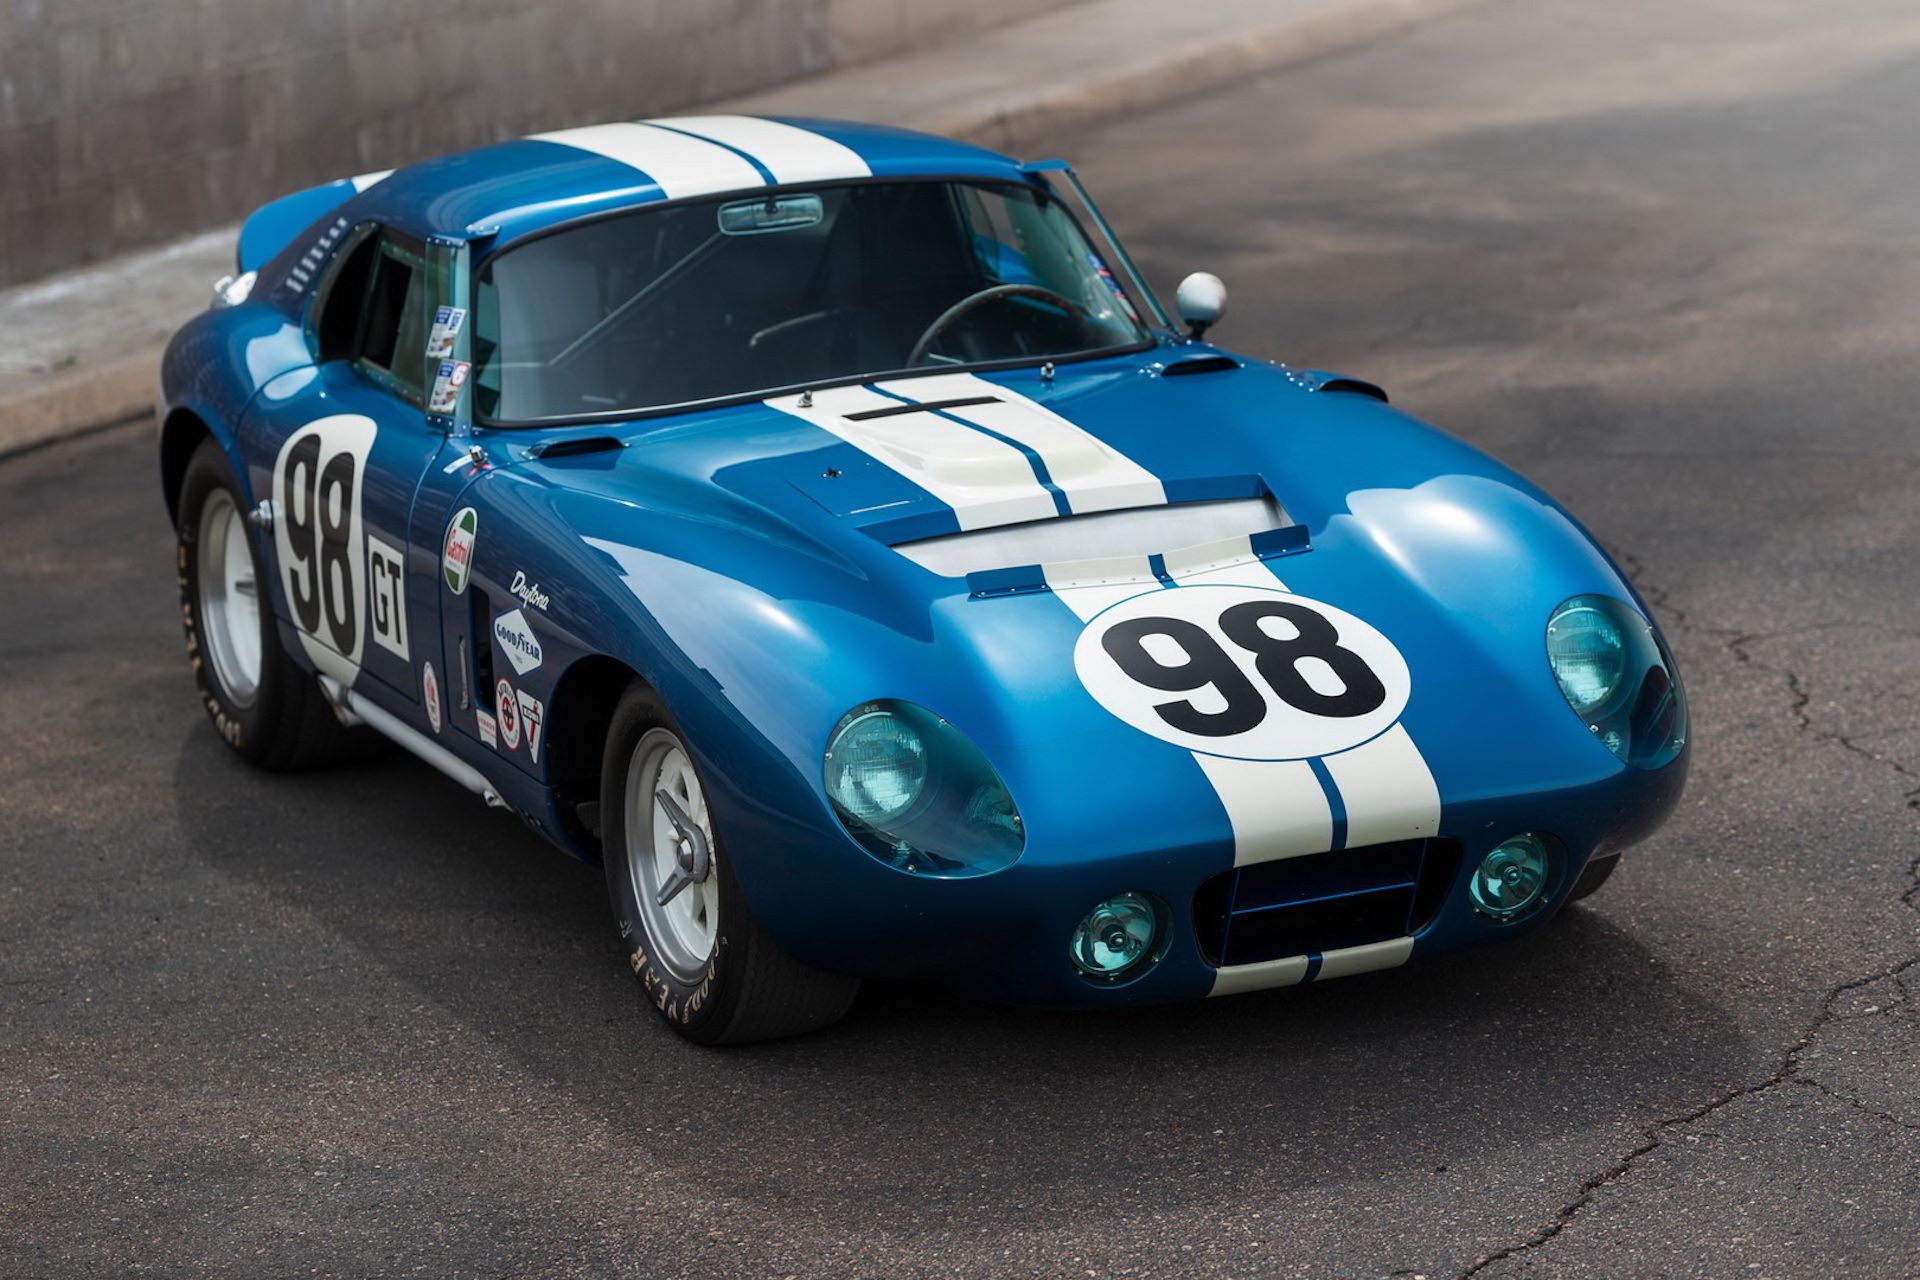 Daytona-Cobra-Carroll-Shelby-auction-AC-Cobra-19